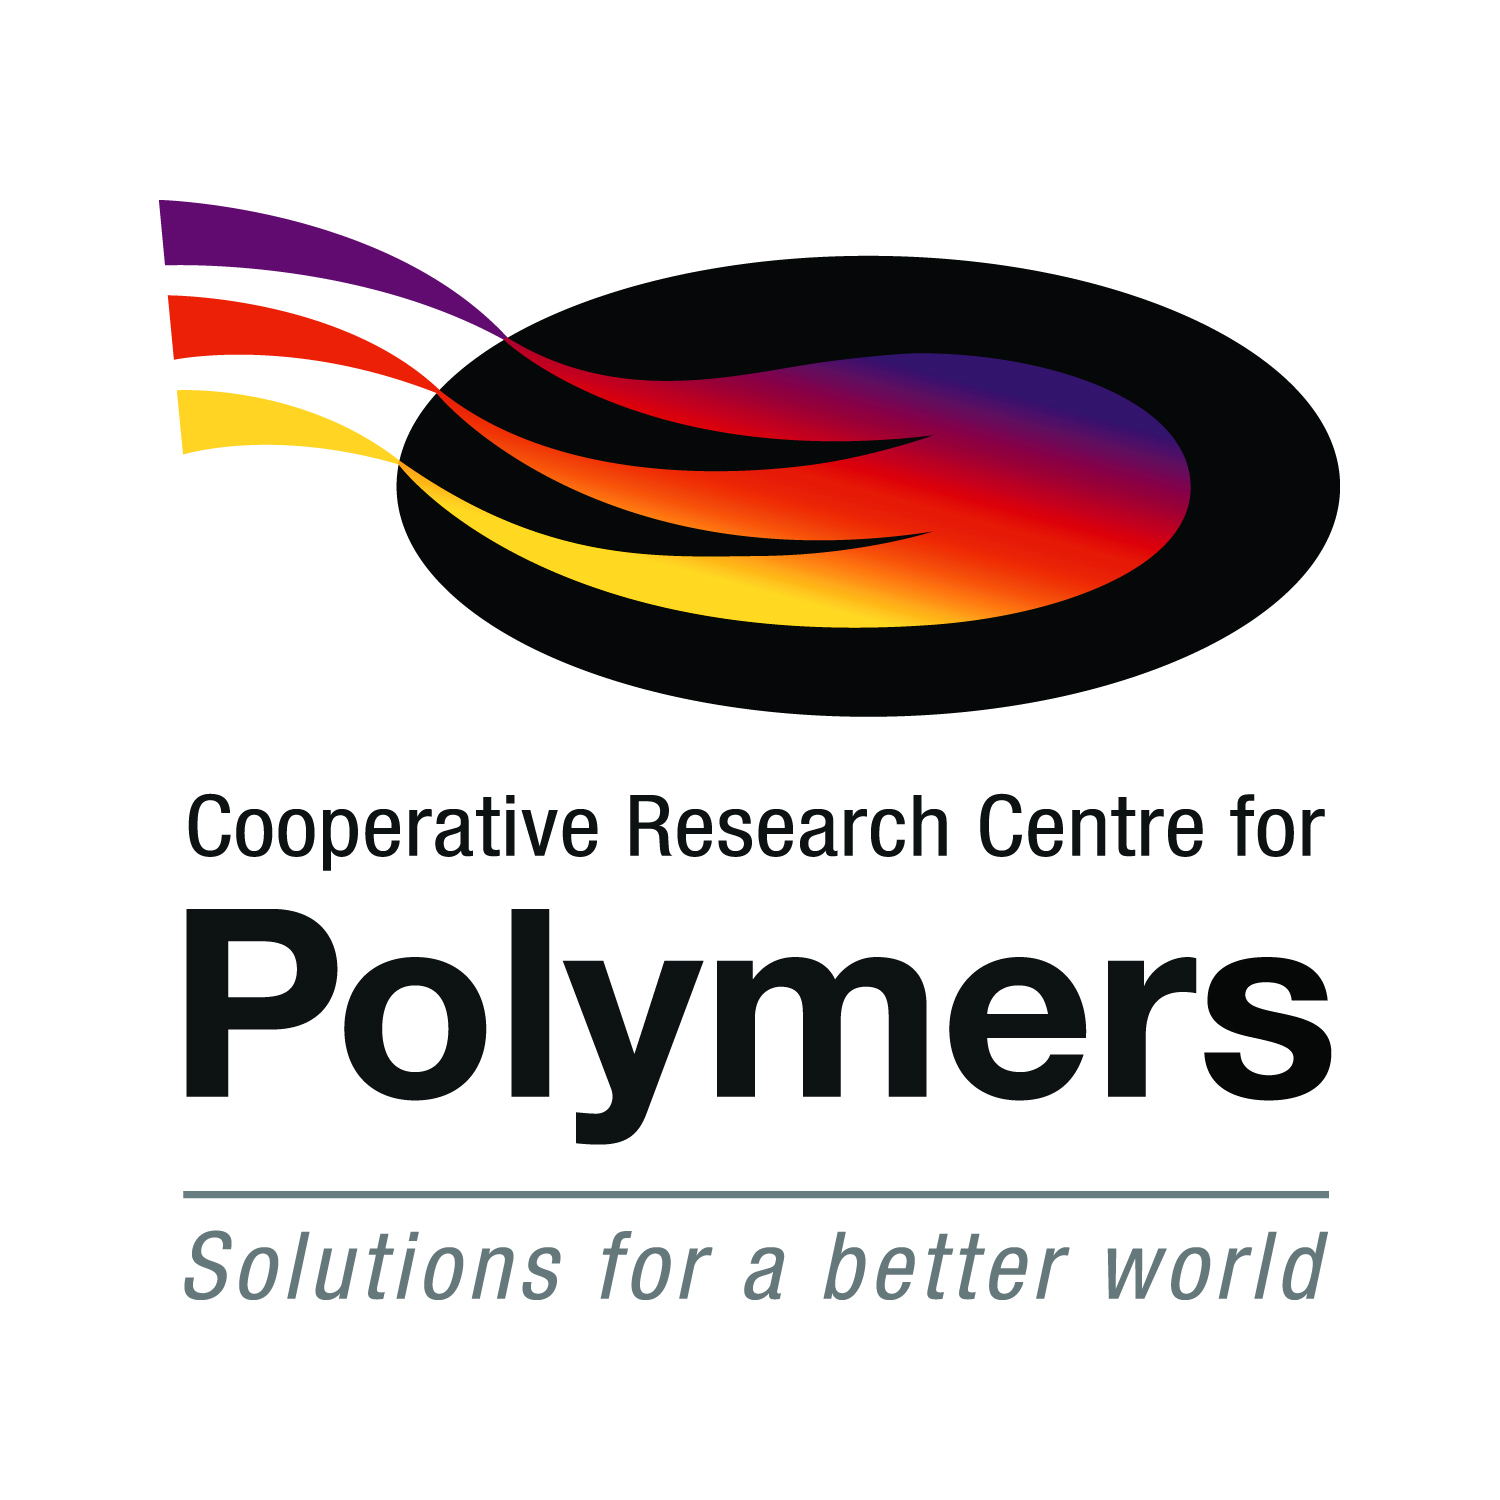 CRC for Polymers logo